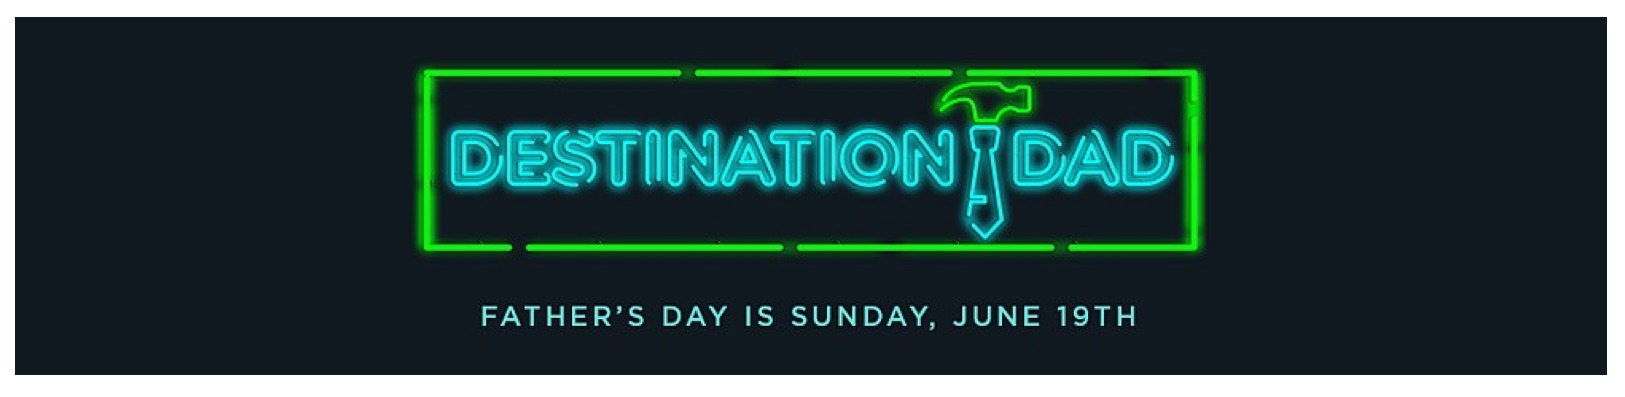 Father's Day Gift Giving Made Easy Sears Destination Dad 3